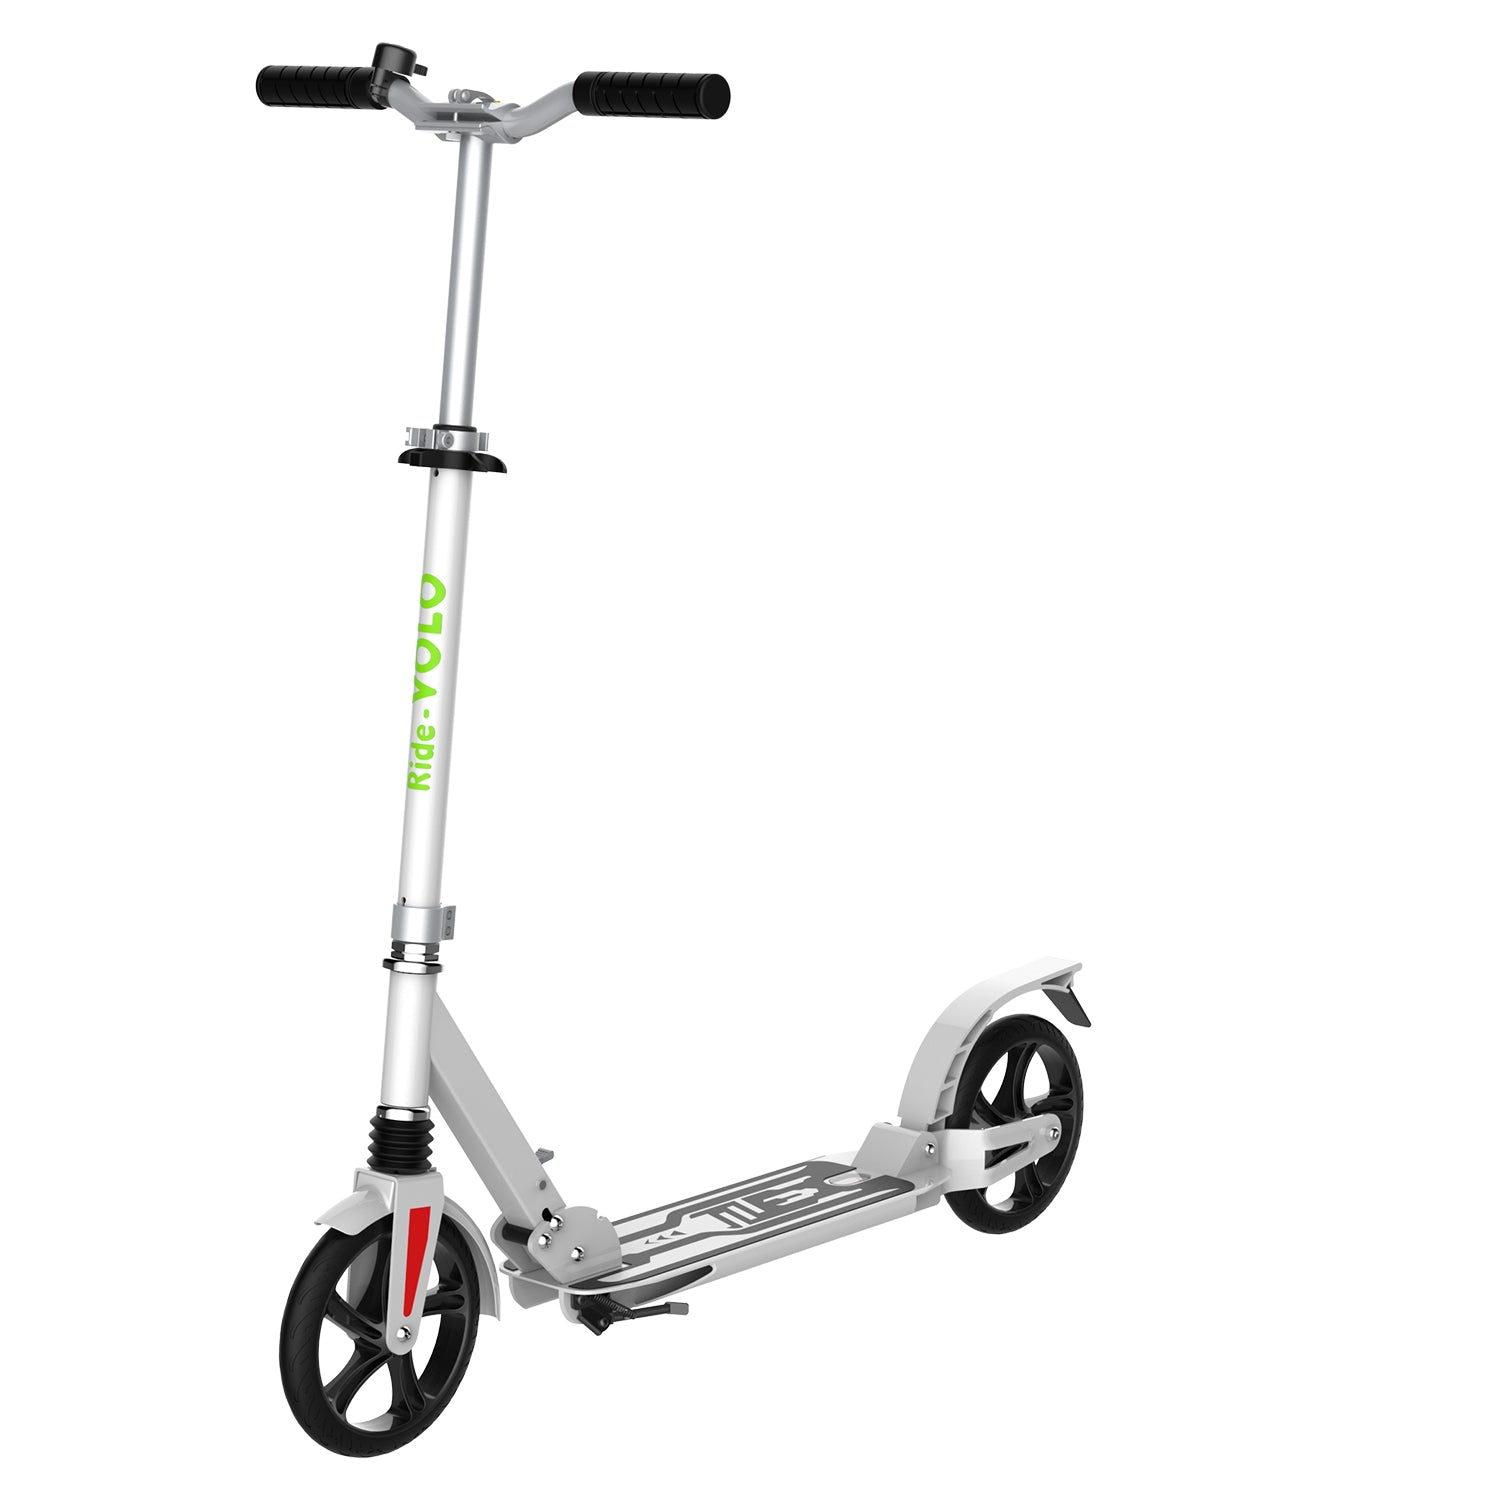 White K08-1 Kick Scooter main